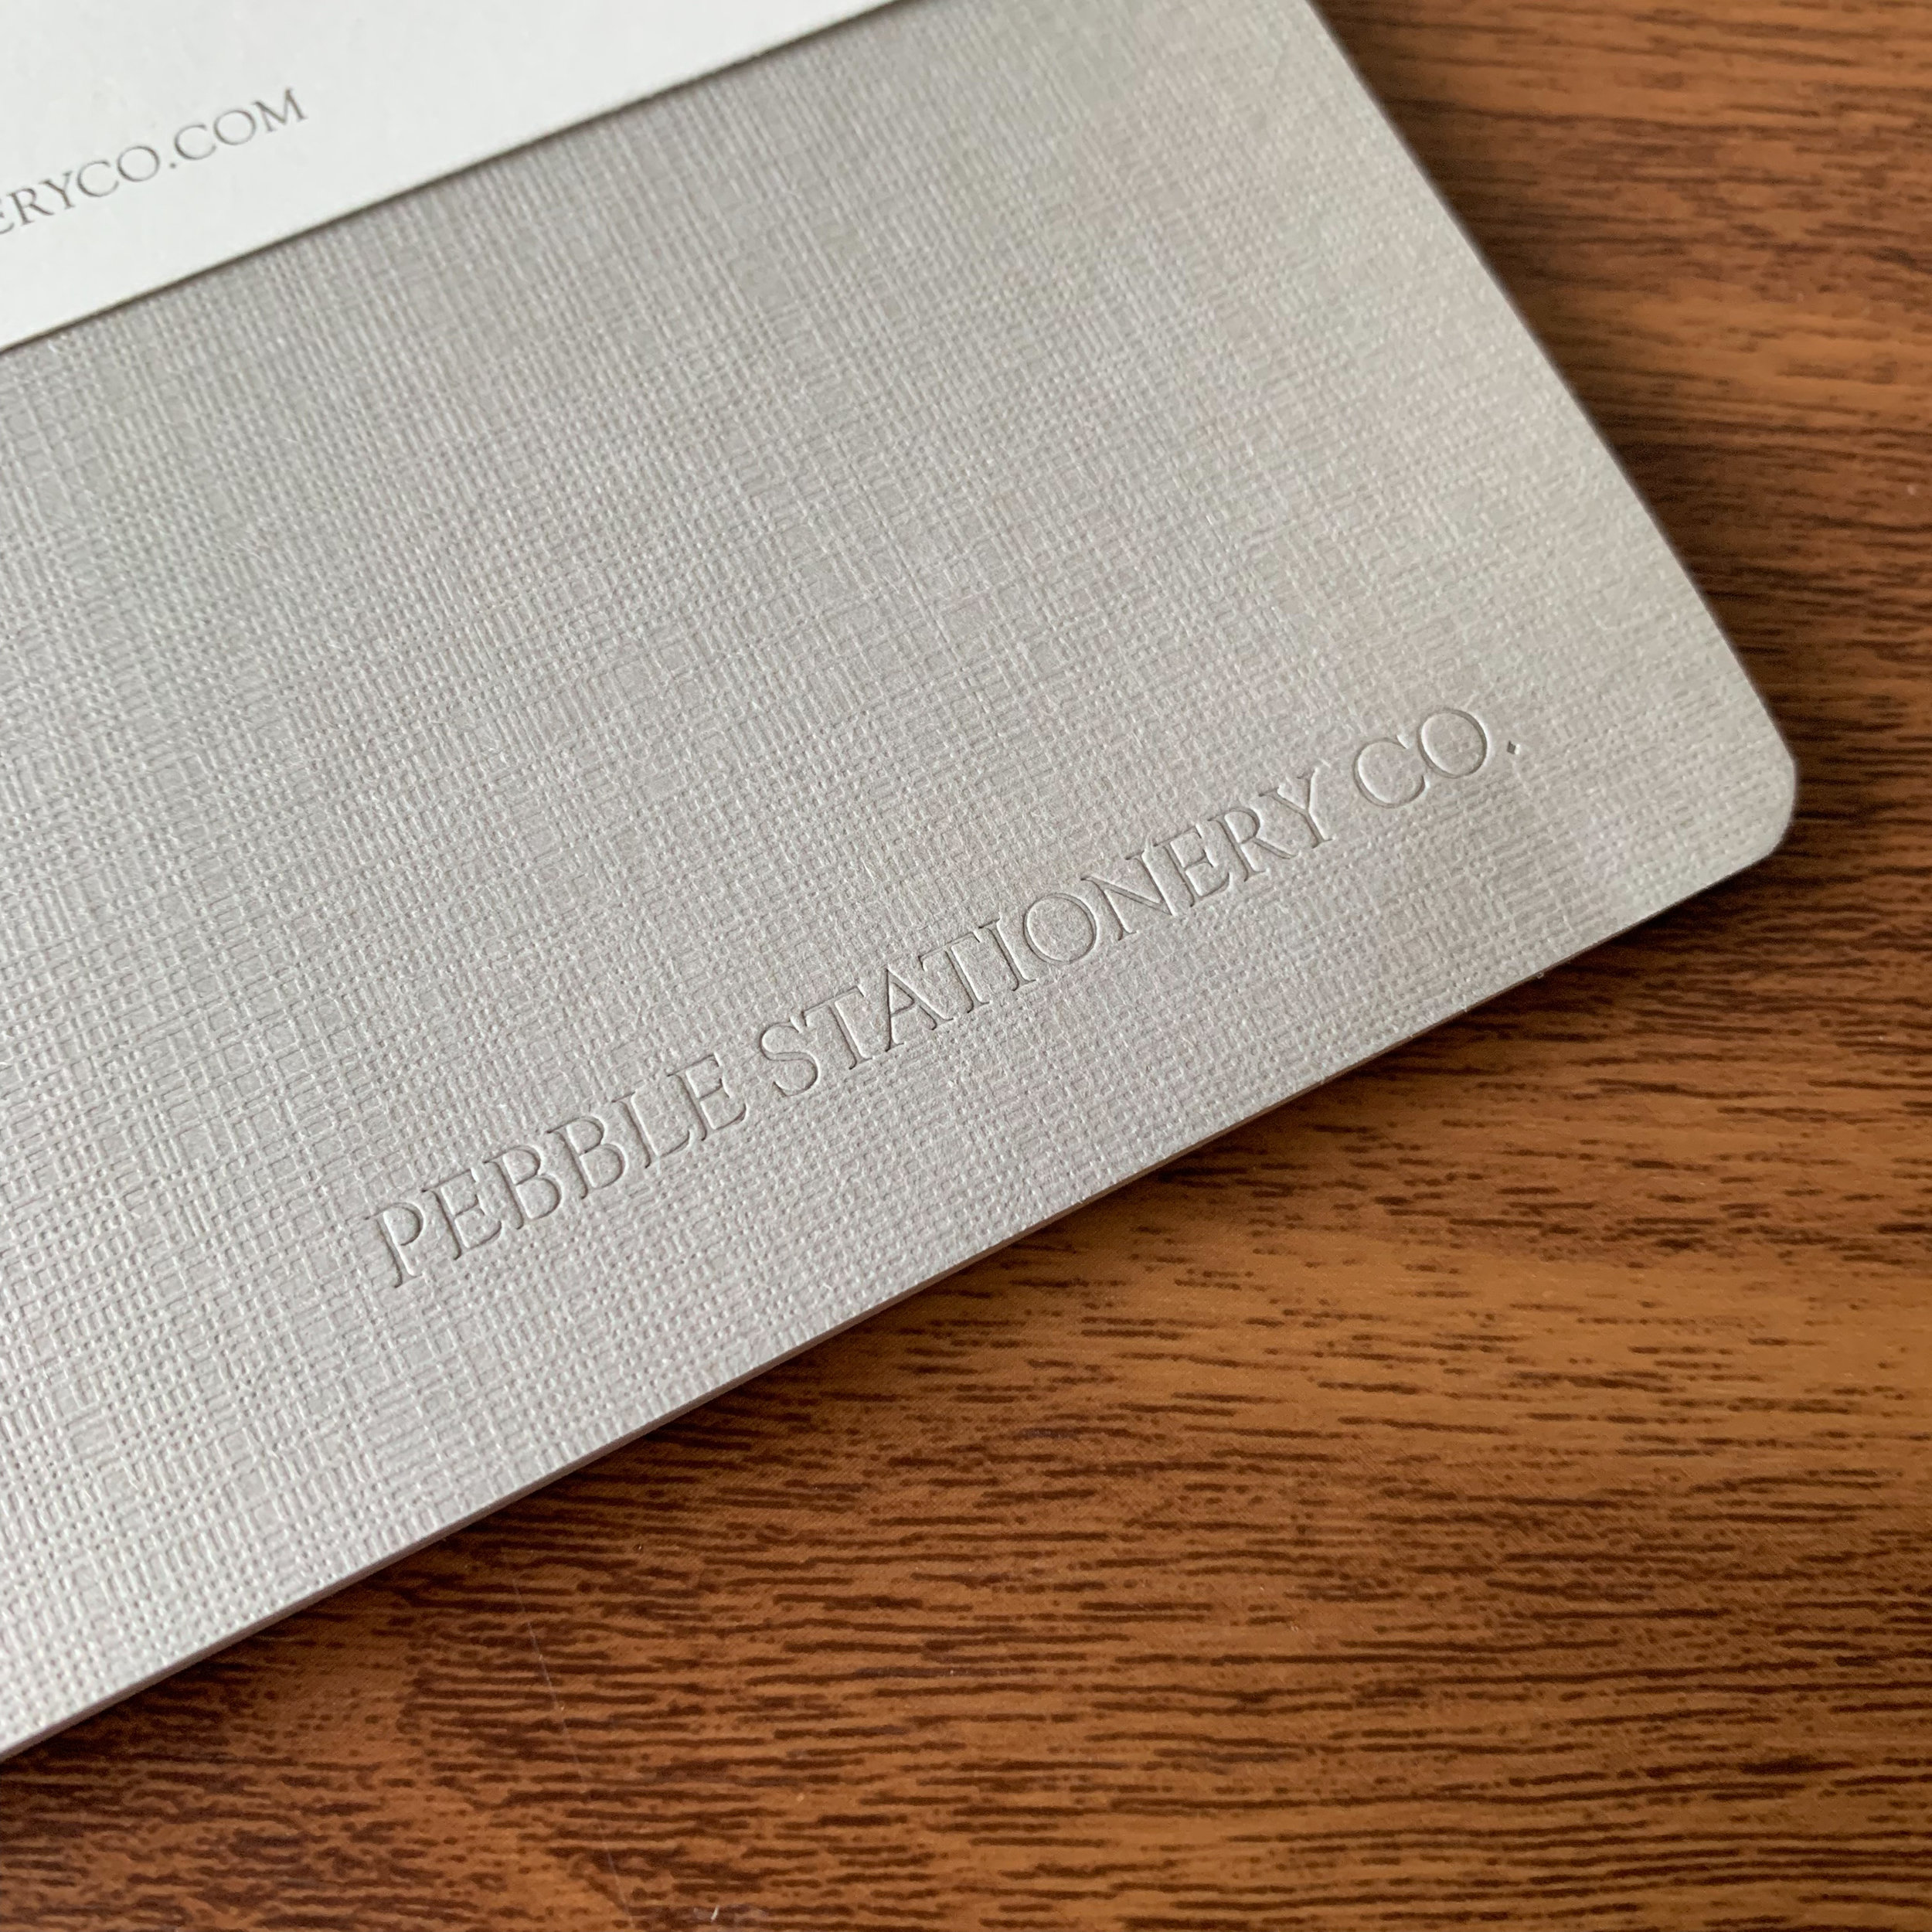 Pebble-Stationery-A5-Logo-Linen-Embossed